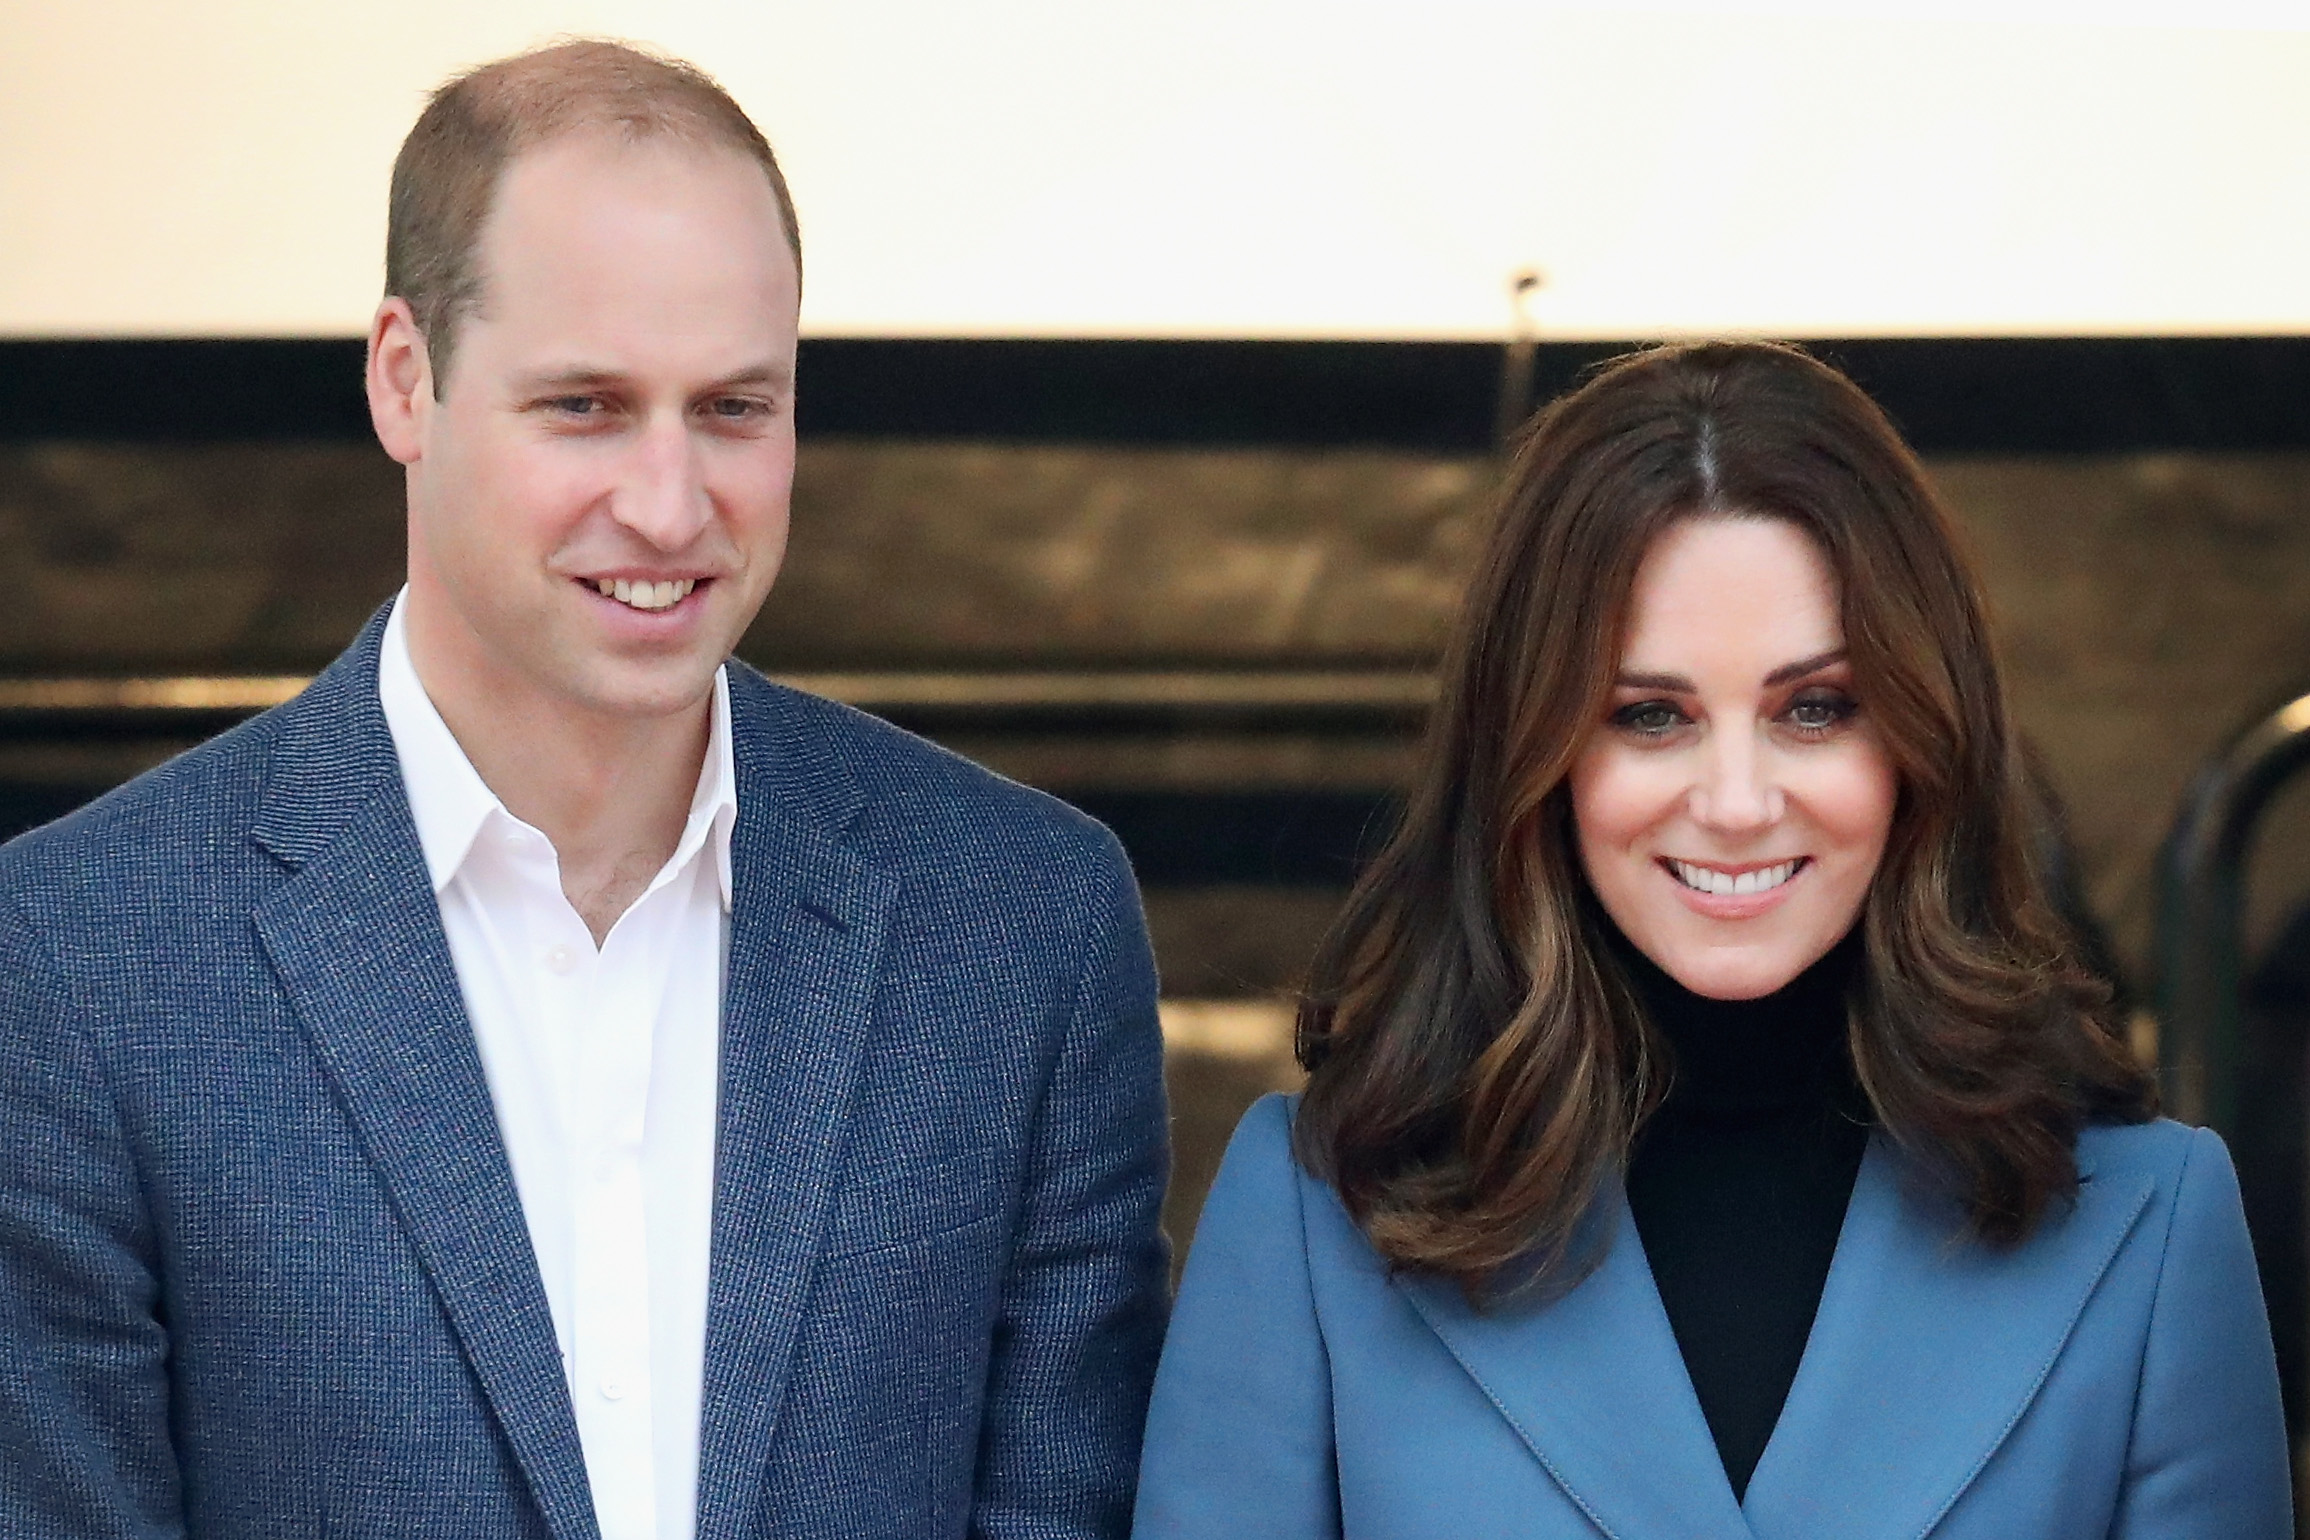 Prince William, Duke of Cambridge and Catherine, Duchess of Cambridge (Source: Getty Images)